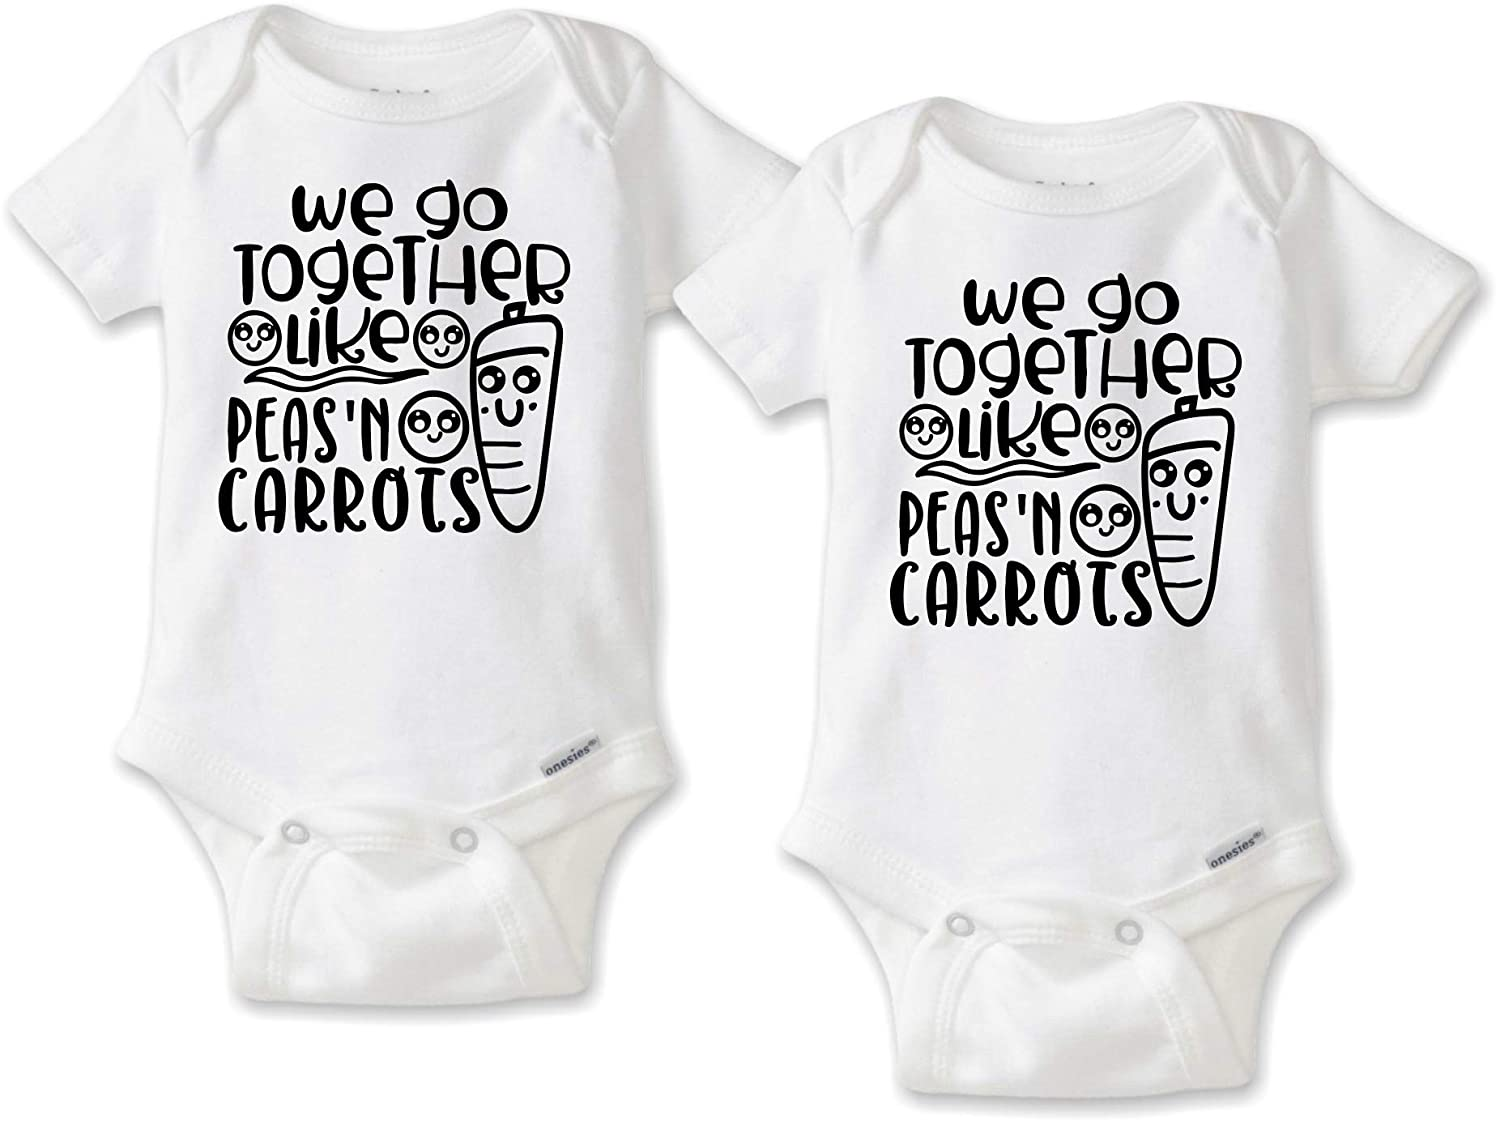 61f590c88 Amazon.com: DoozyDesigns We Go Together Like Peas and Carrots - Twin Baby  Bodysuit or T-Shirt Set: Clothing